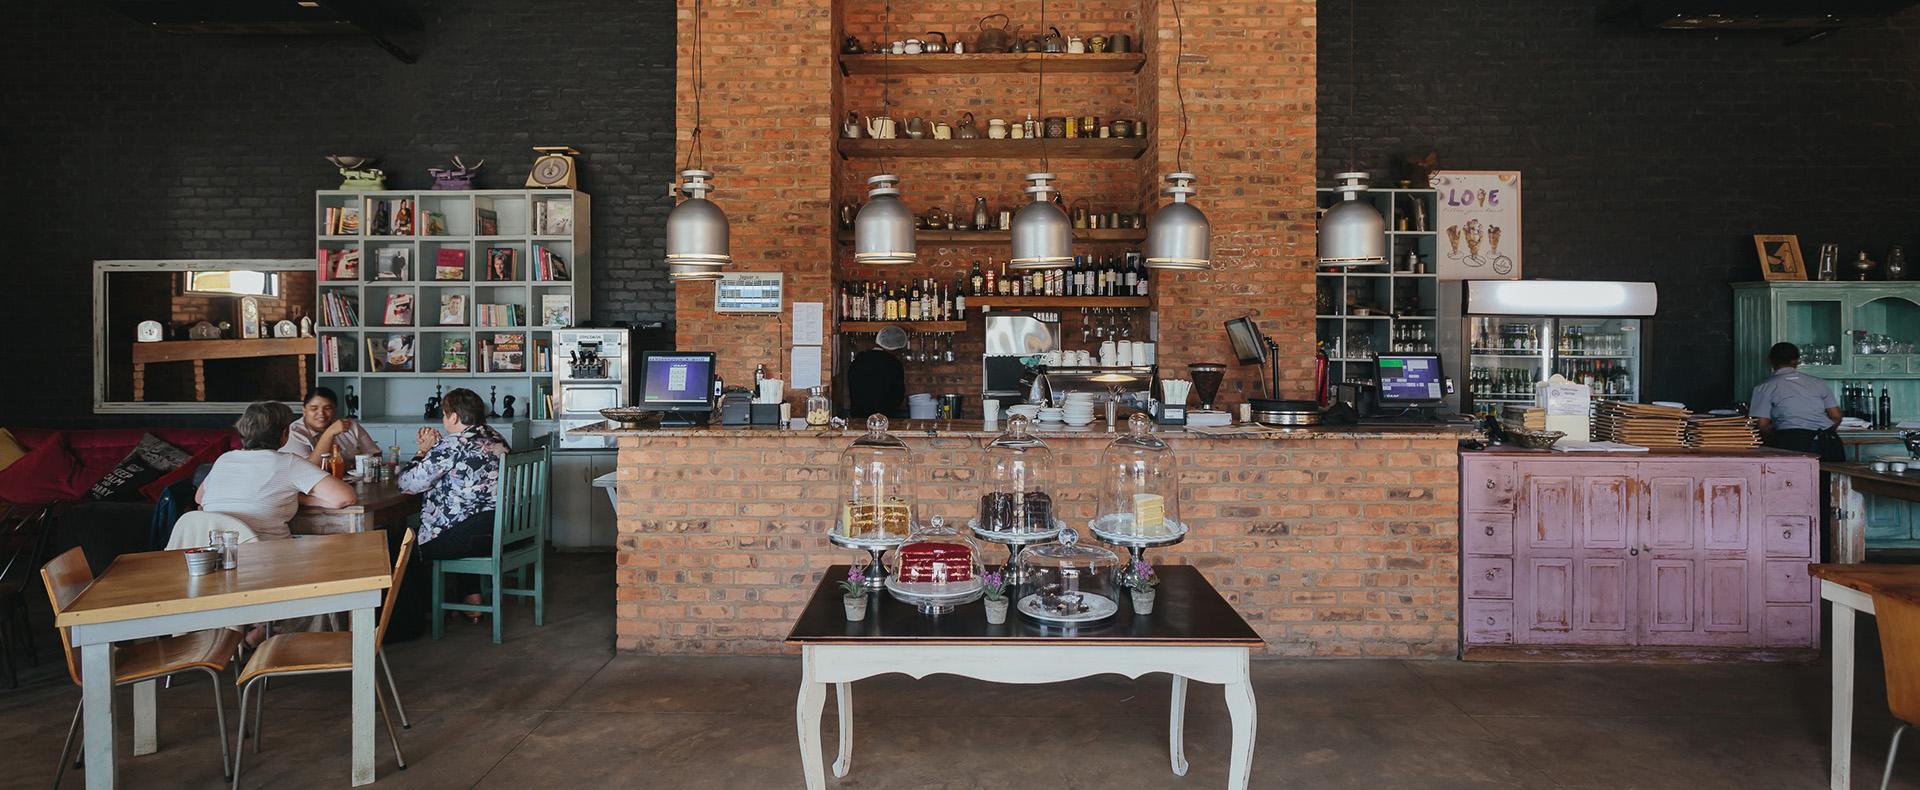 Feel At Home With Essence Café And Grill